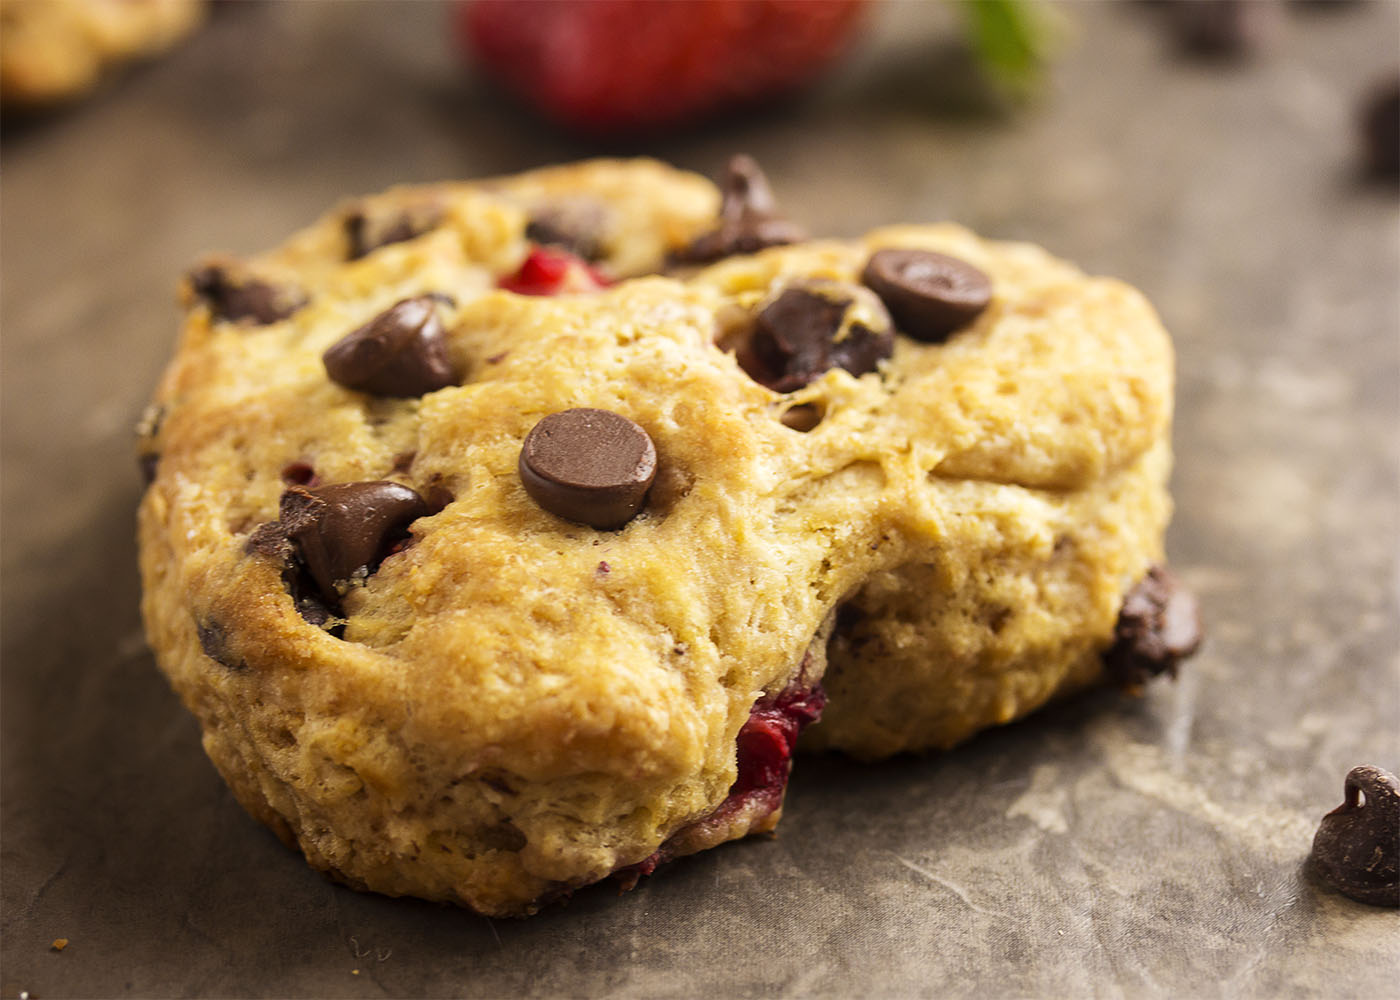 Close up of a heart shaped chocolate chip strawberry buttermilk scone.